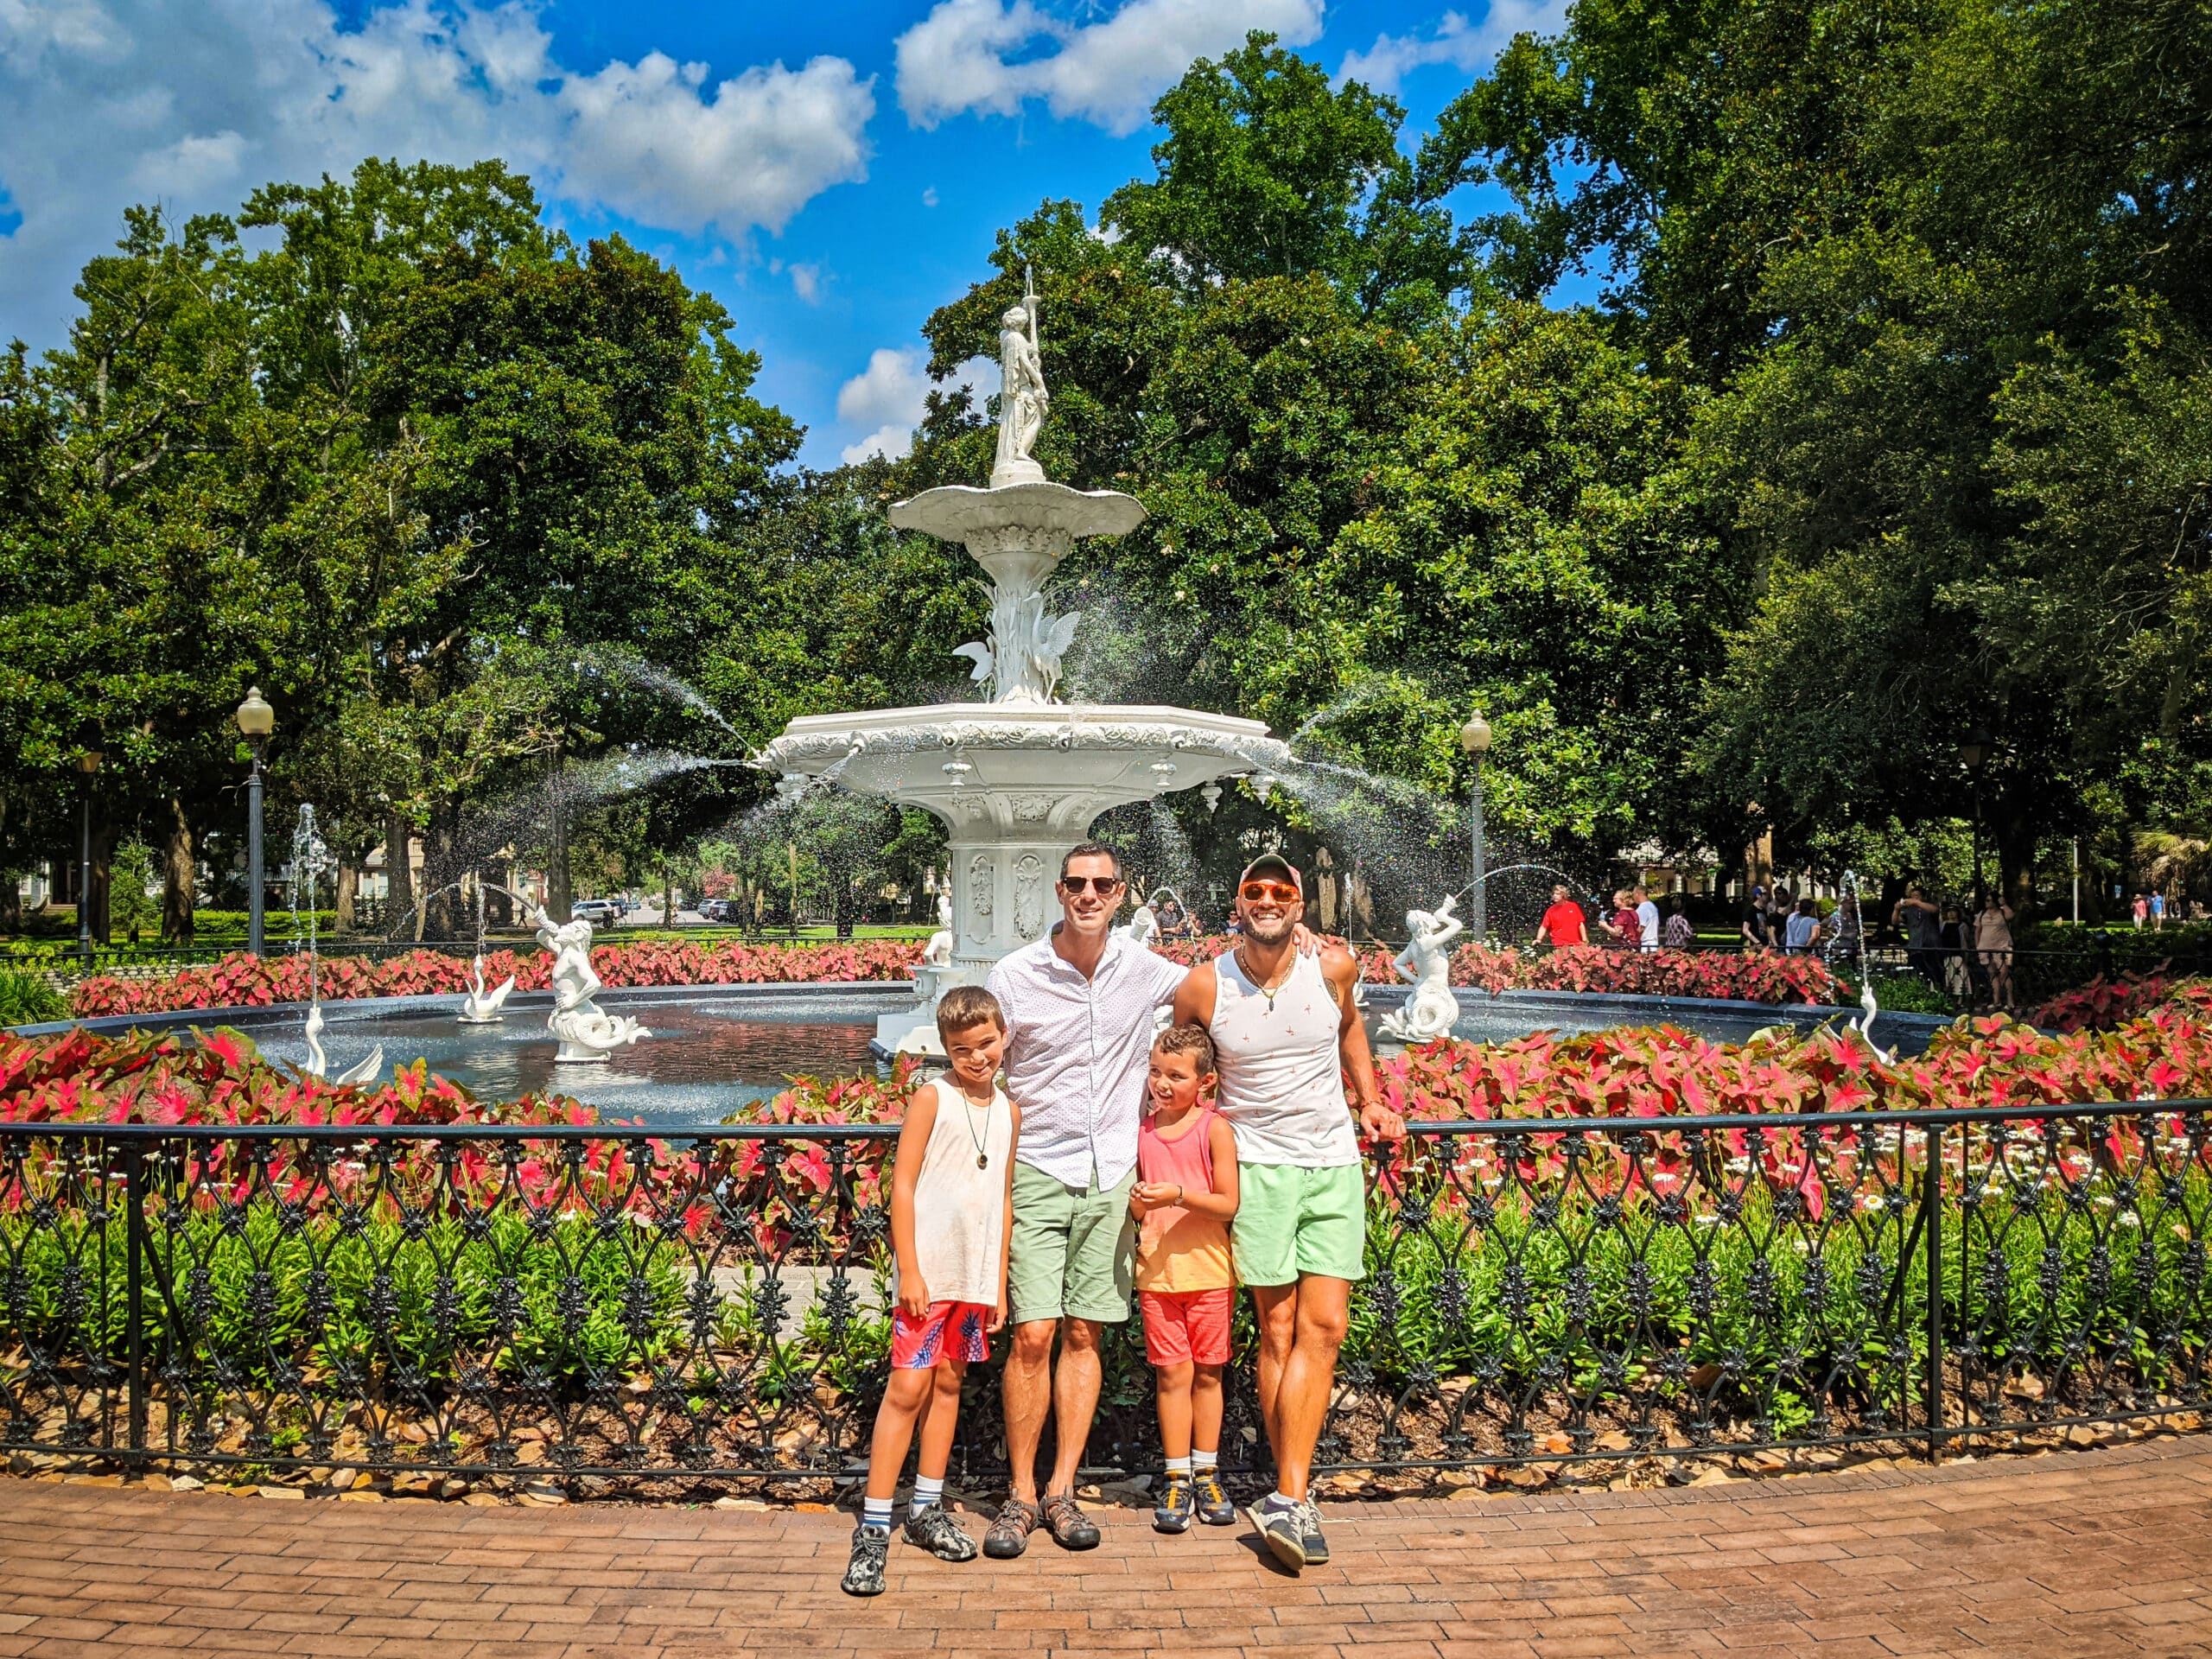 2TravelDads Full Taylor Family at White Fountain at Forsyth Park Historic District Savannah Georgia 1 scaled